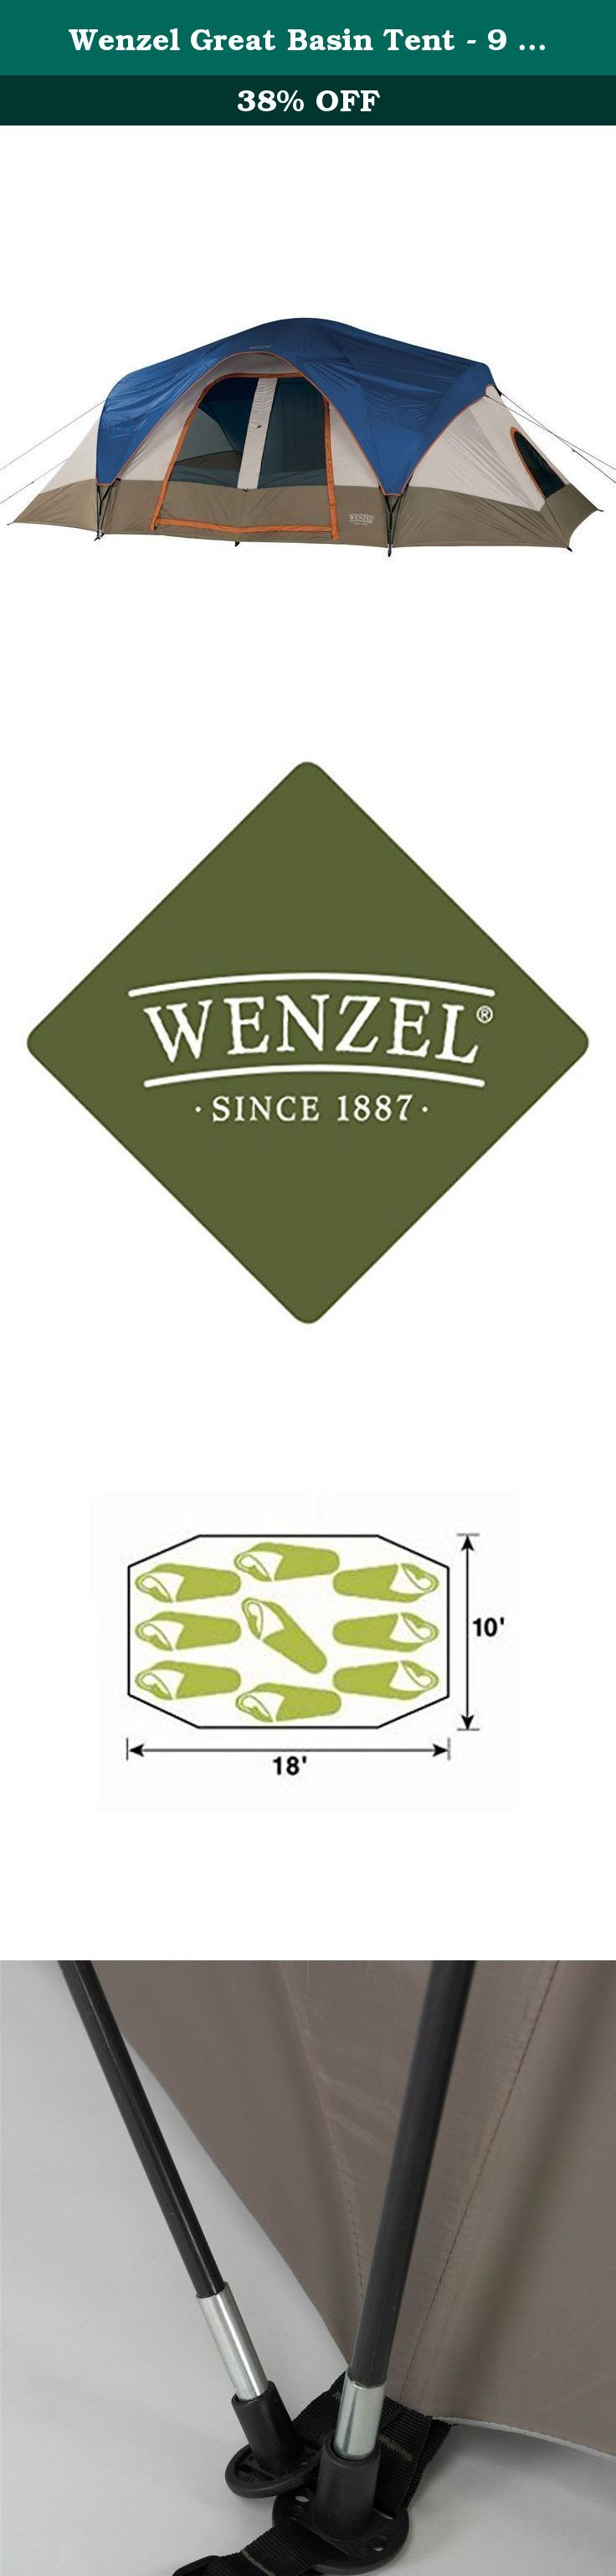 """Wenzel Great Basin Tent - 9 Person. One of our largest, spacious tents if your looking for extra room. The Great Basin base is 18 ft. x 10 ft. x 76"""" center height. With Back to back dutch """"D"""" style doors, two mesh windows and roof vents for ventilation. Constructed with welded polyethylene floor and fiberglass frame, with steel and plastic stakes to secure this portable home. Shockcorded fiberglass poles with pin and ring system for easy set-up and take down. Hooped fly over the front…"""